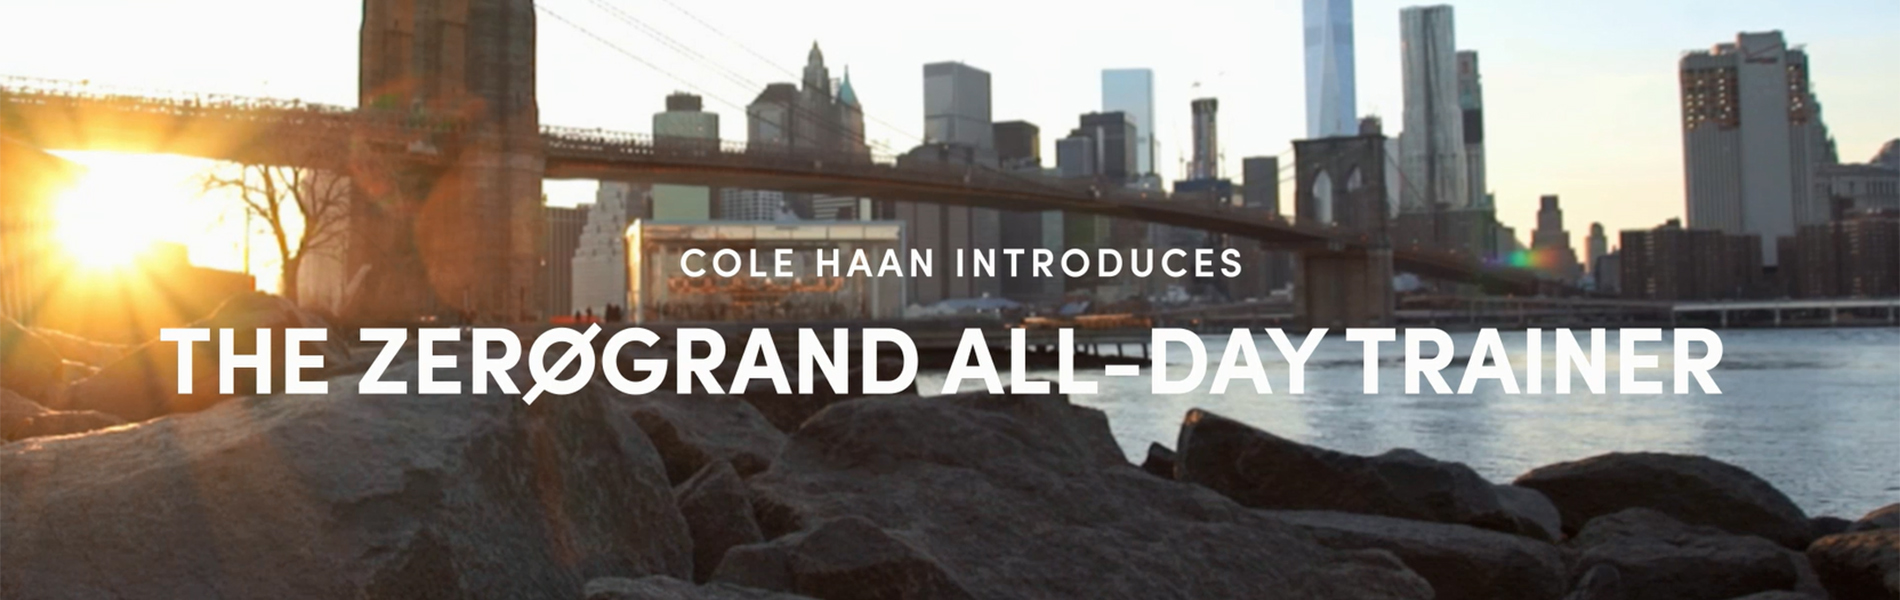 Cole Haan Announces Launch of The ZERØGRAN...